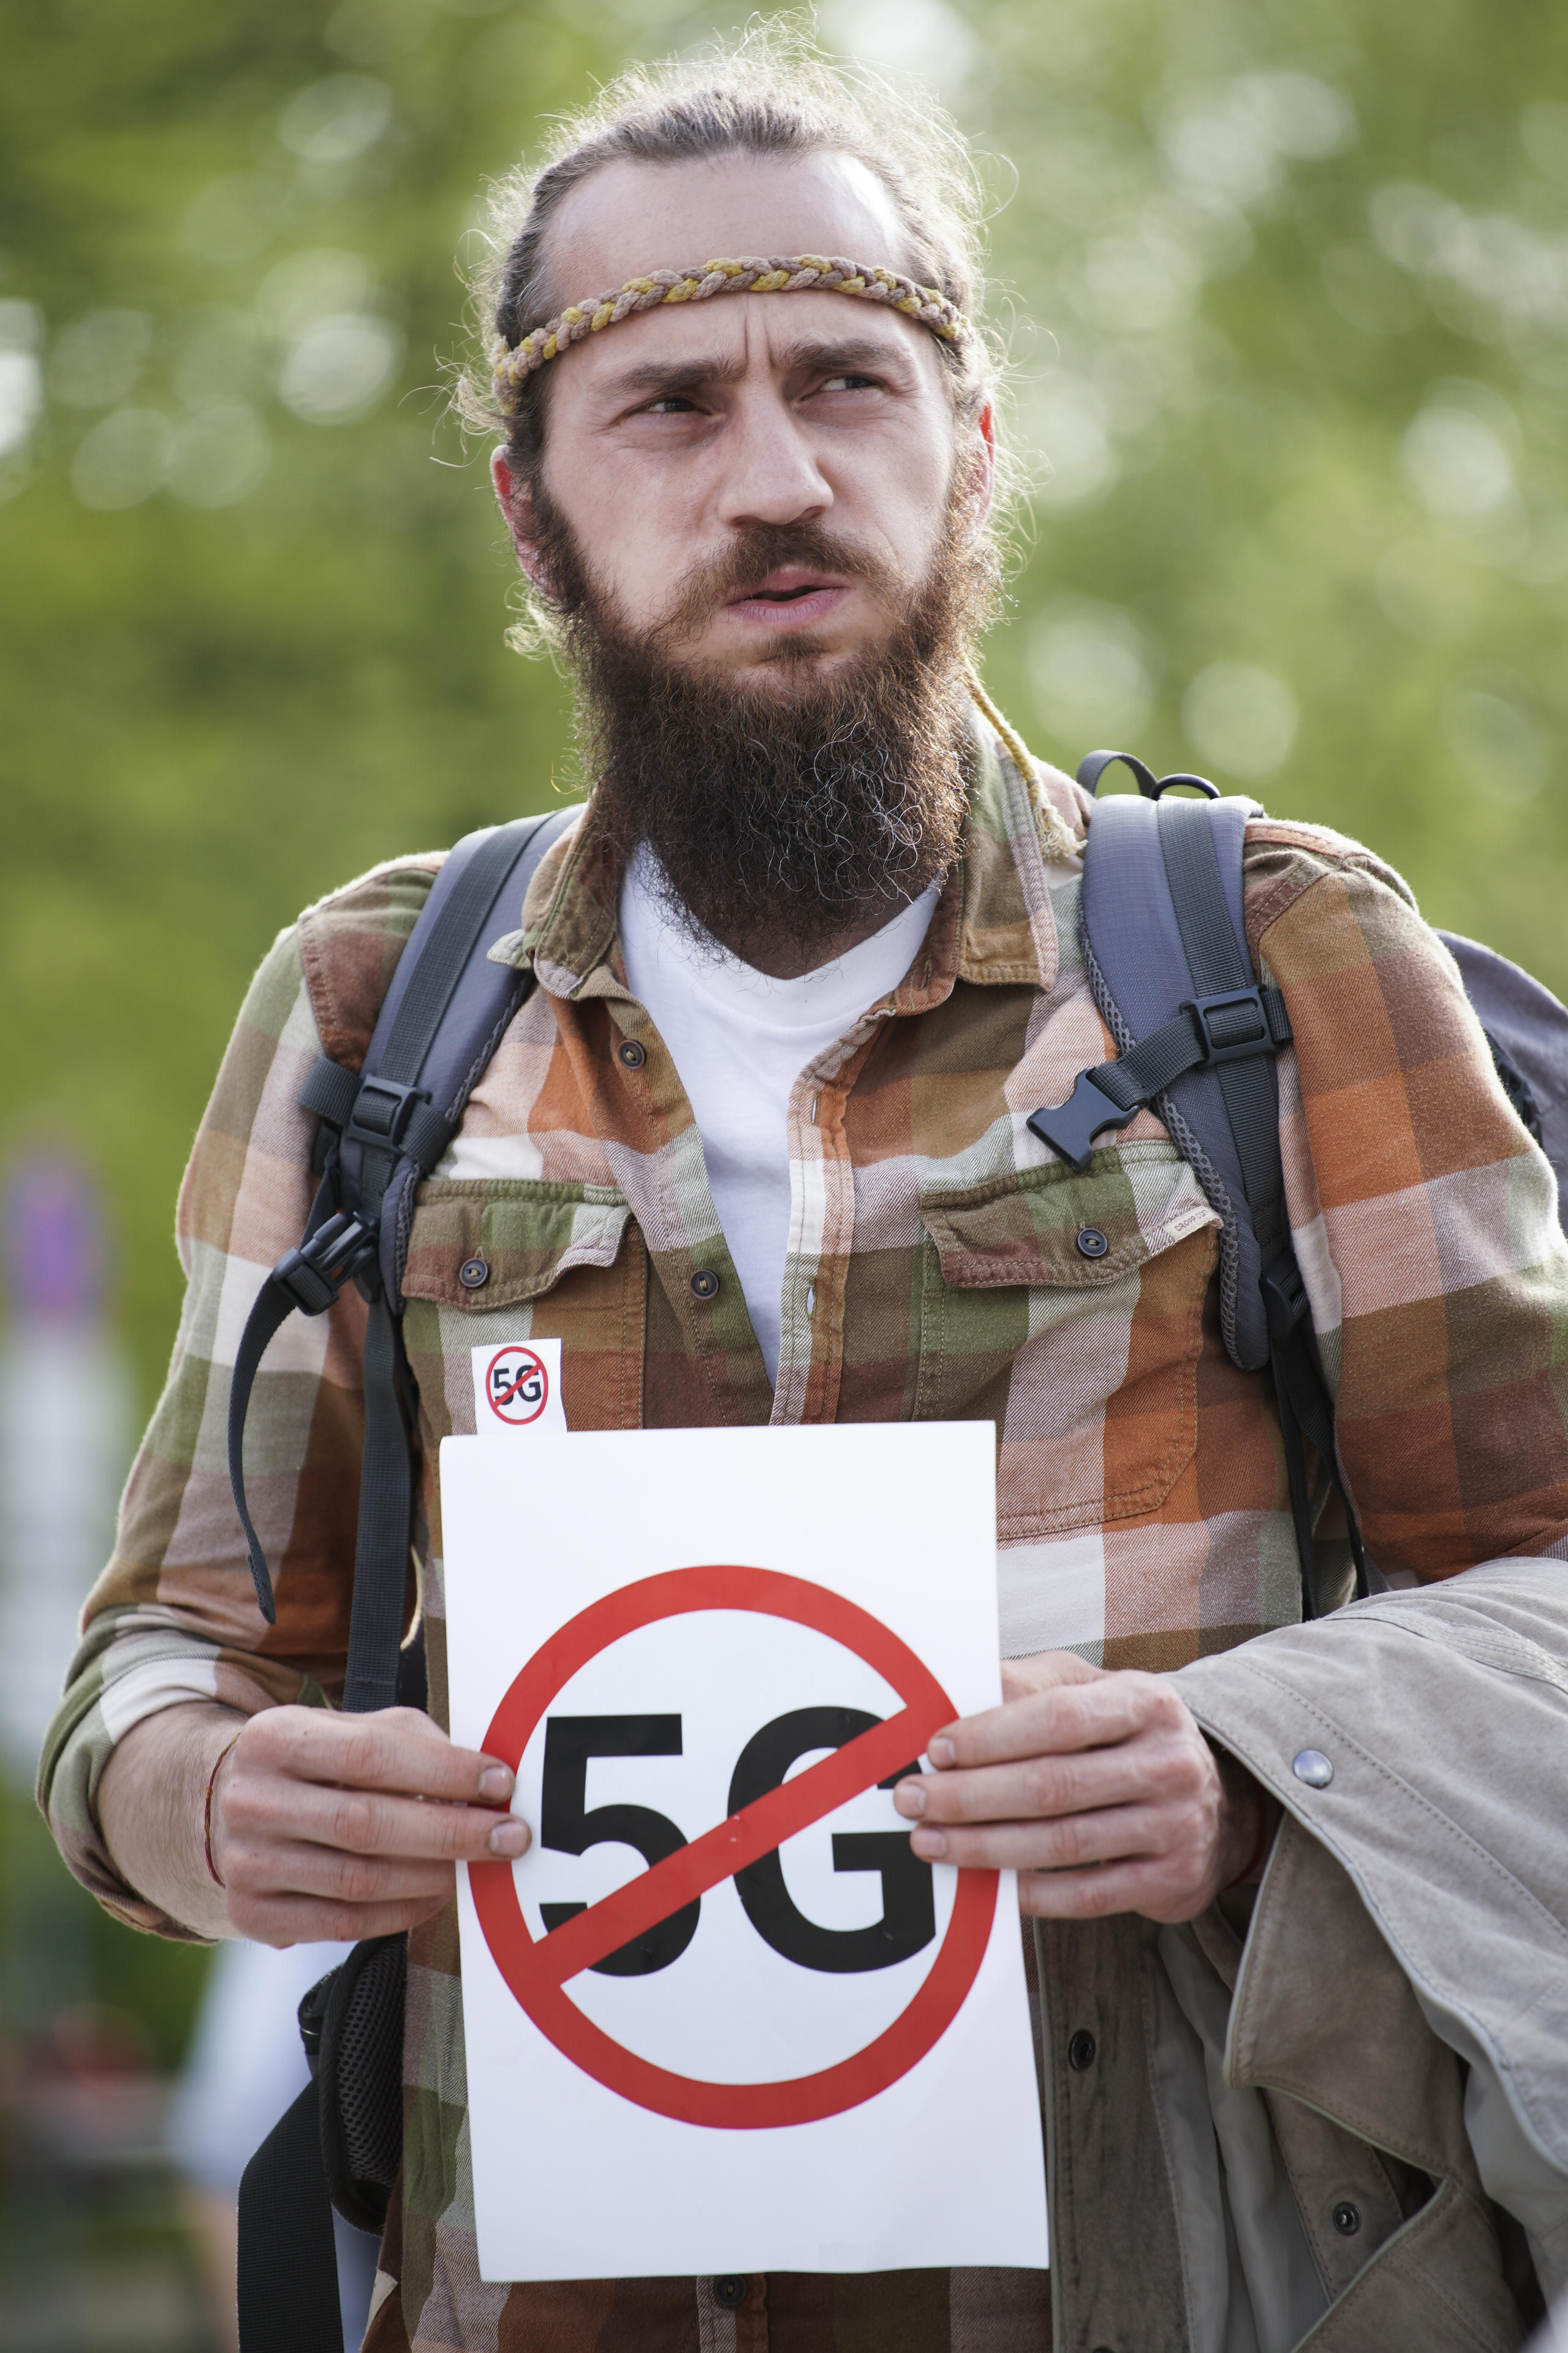 Rally Against 5G Networks In Poland